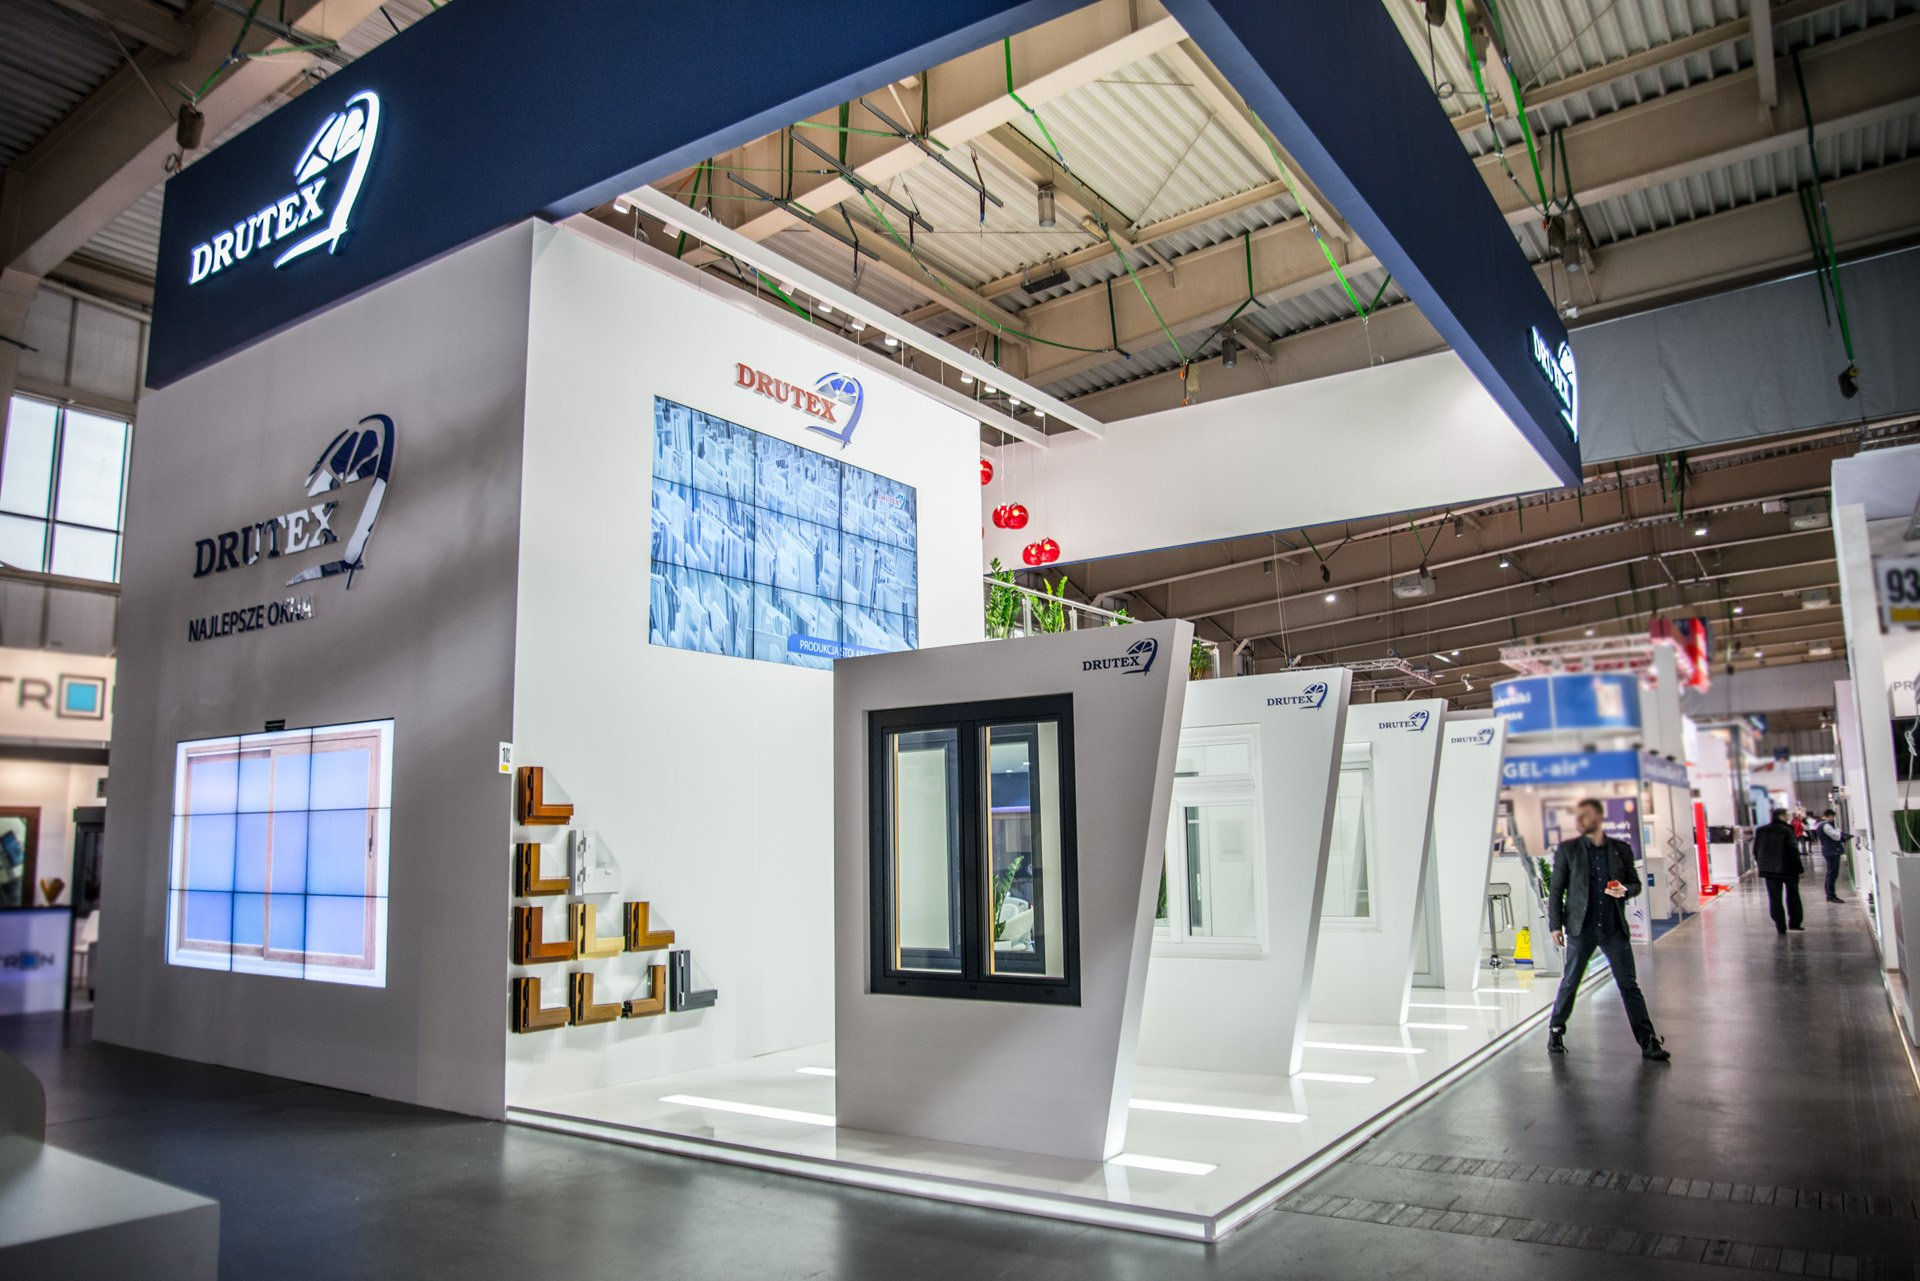 DRUTEX presents its new products at BUDMA trade fair